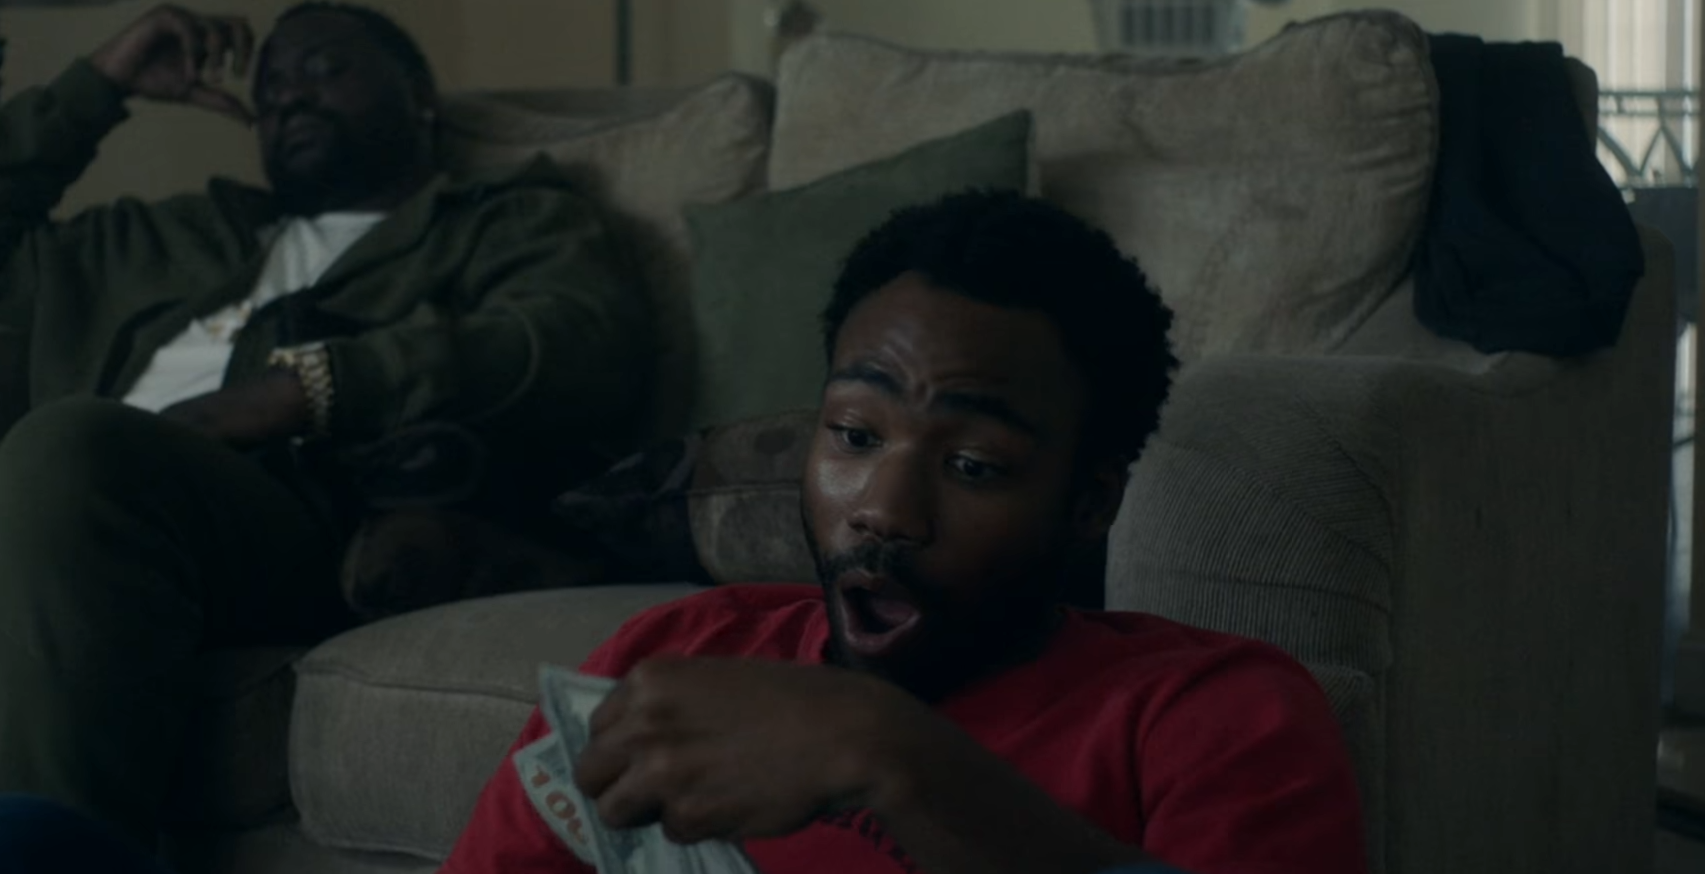 Donald Glover Confirms that Production on Season 3 of 'Atlanta' is Underway